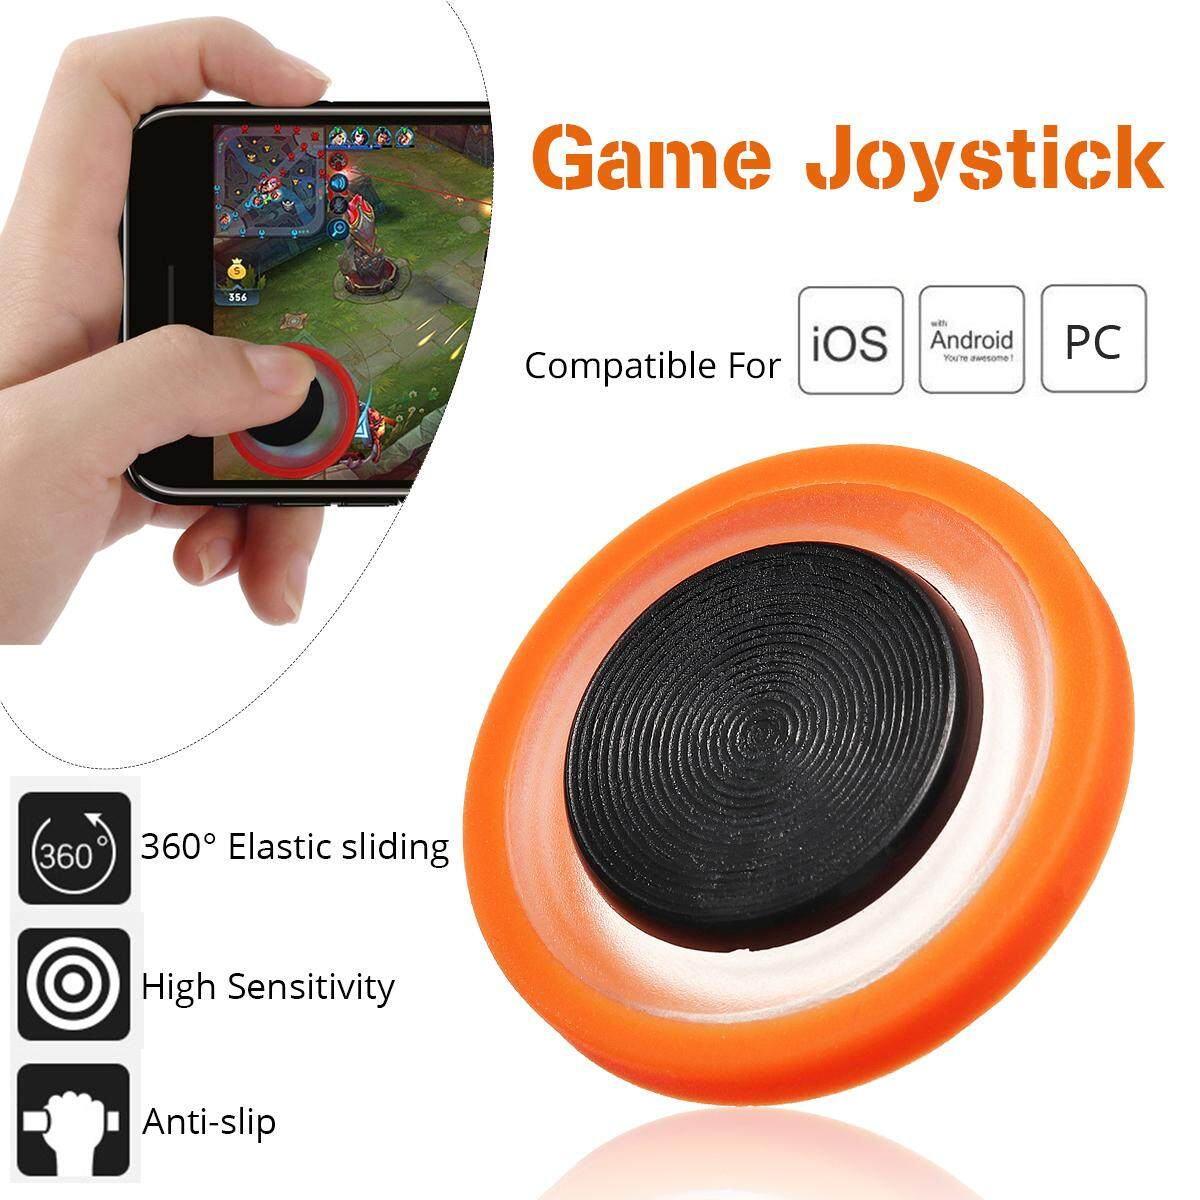 Mobile Phone Game Joystick Control Tool For Pubg Fornite Mobile Legends Fifa2018 By Elec Mall.